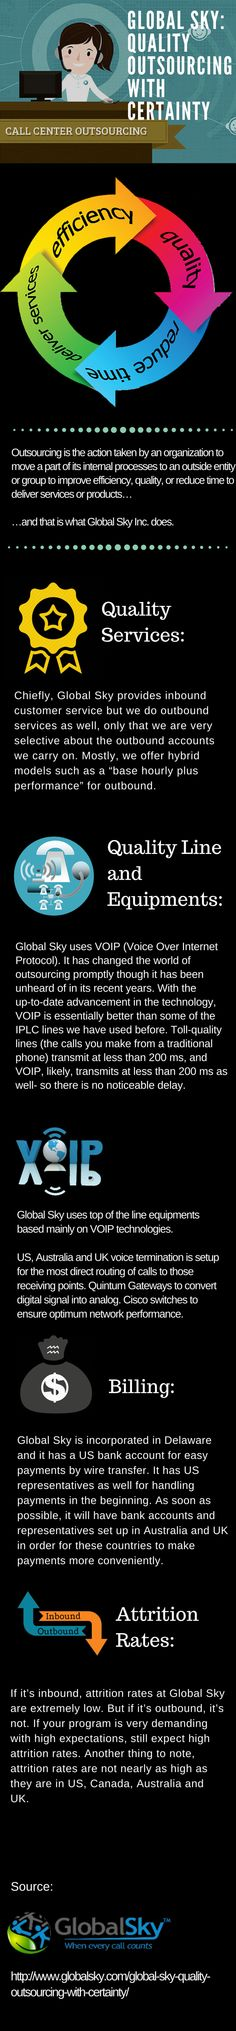 Global Sky is providing quality and satisfied services for their valued customers with an outsource with certainty operation to be the Best Call Center . Global Sky - Quality Outsourcing with Certainty Call Support, Philippines, Sky, Heaven